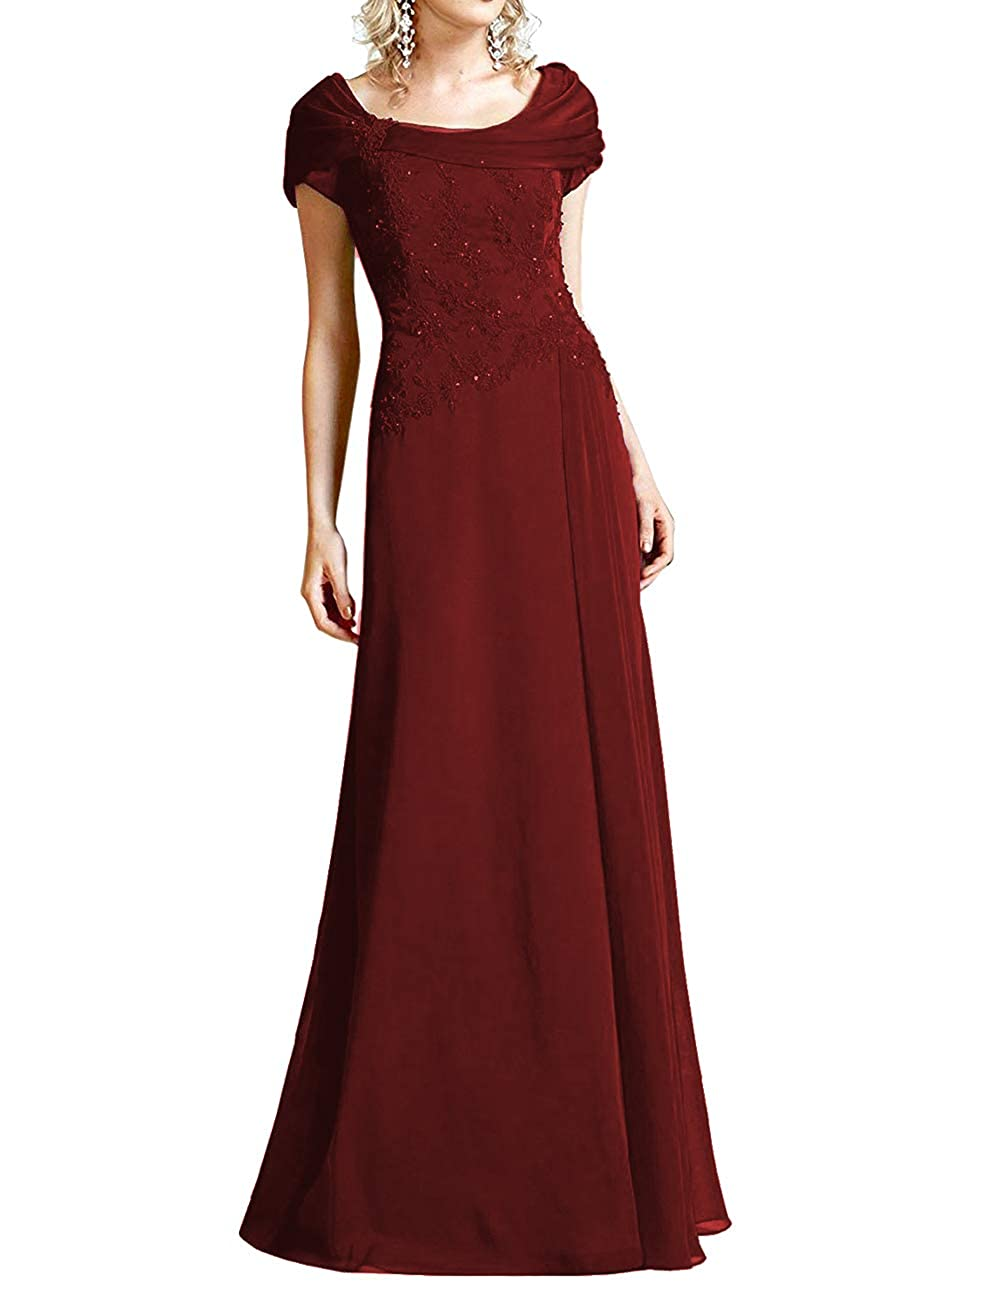 Dark Burgundy H.S.D Mother of The Bride Dresses Lace Formal Gowns Long Evening Dress Prom Wrap Shawl